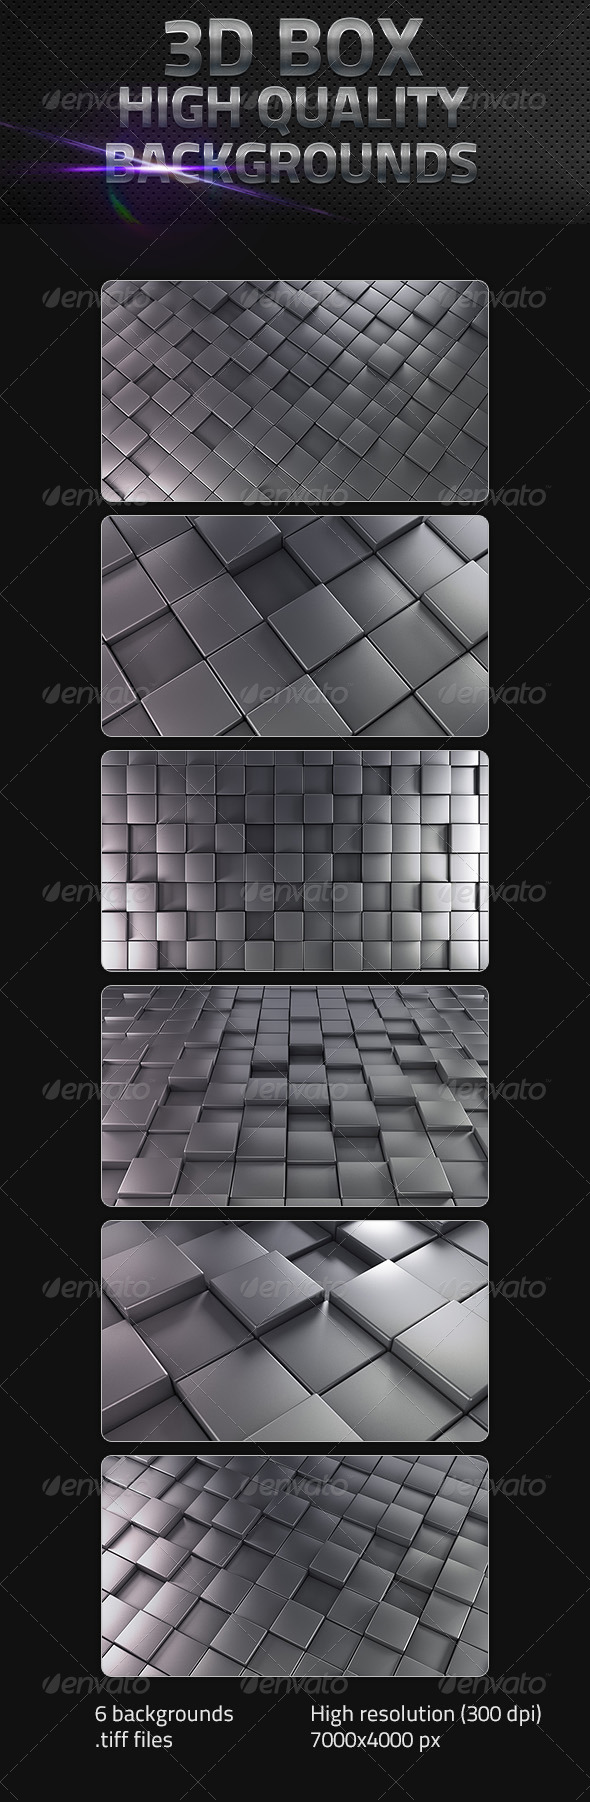 3D Cube Backgrounds in High Resolution - 3D Backgrounds